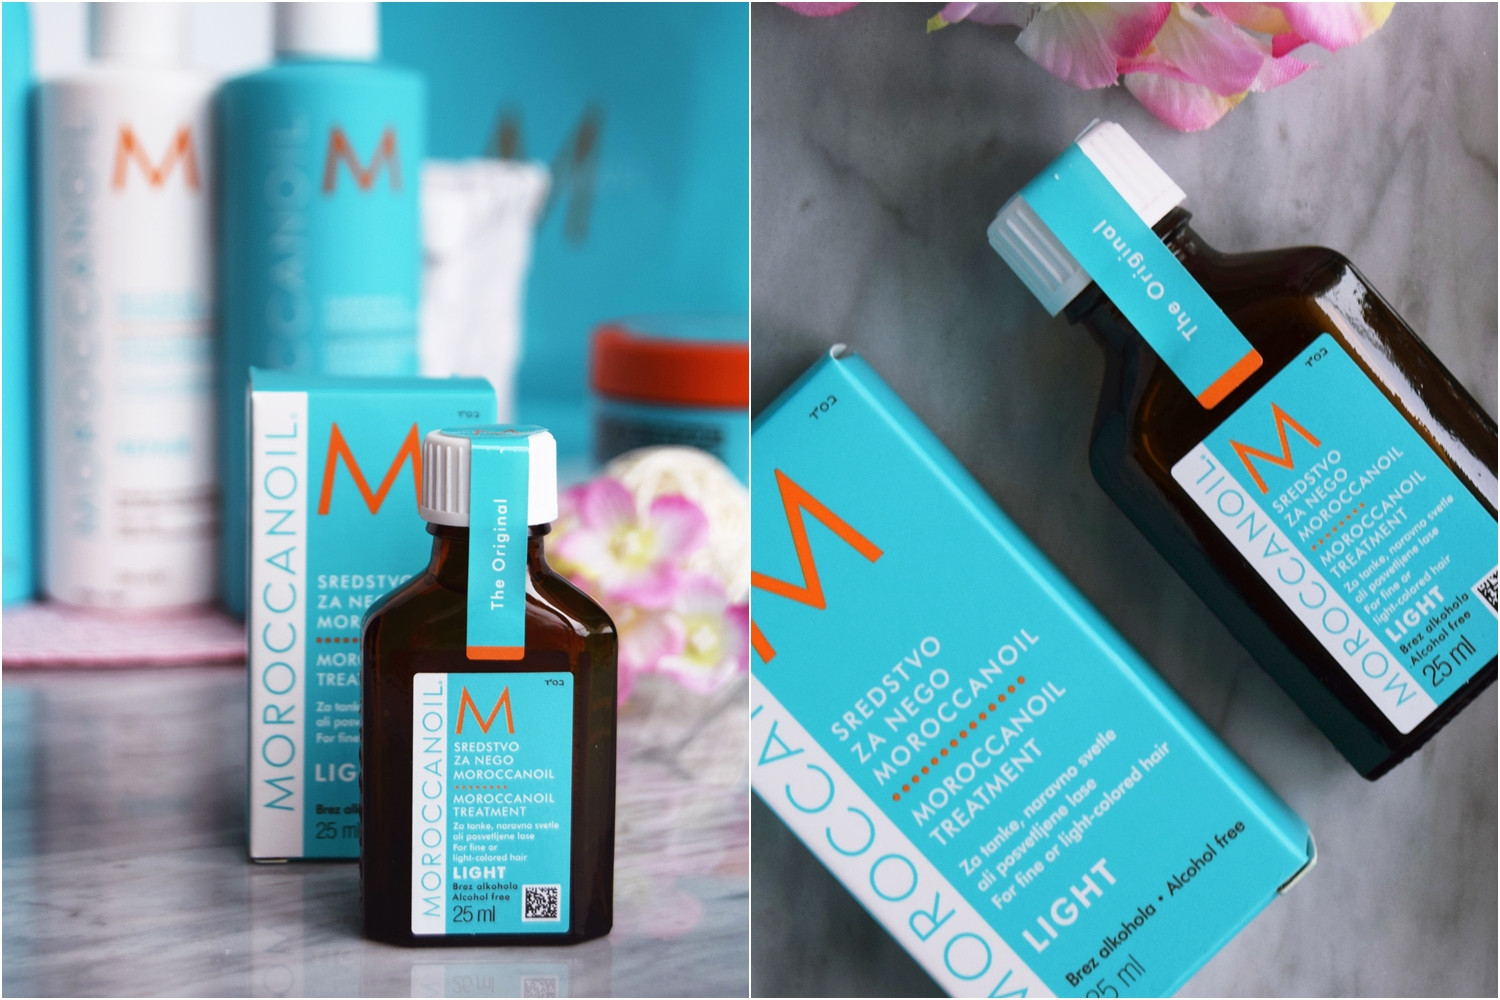 Moroccanoil_Restorative_hair_Mask_treatment_Zalabell_beauty_8